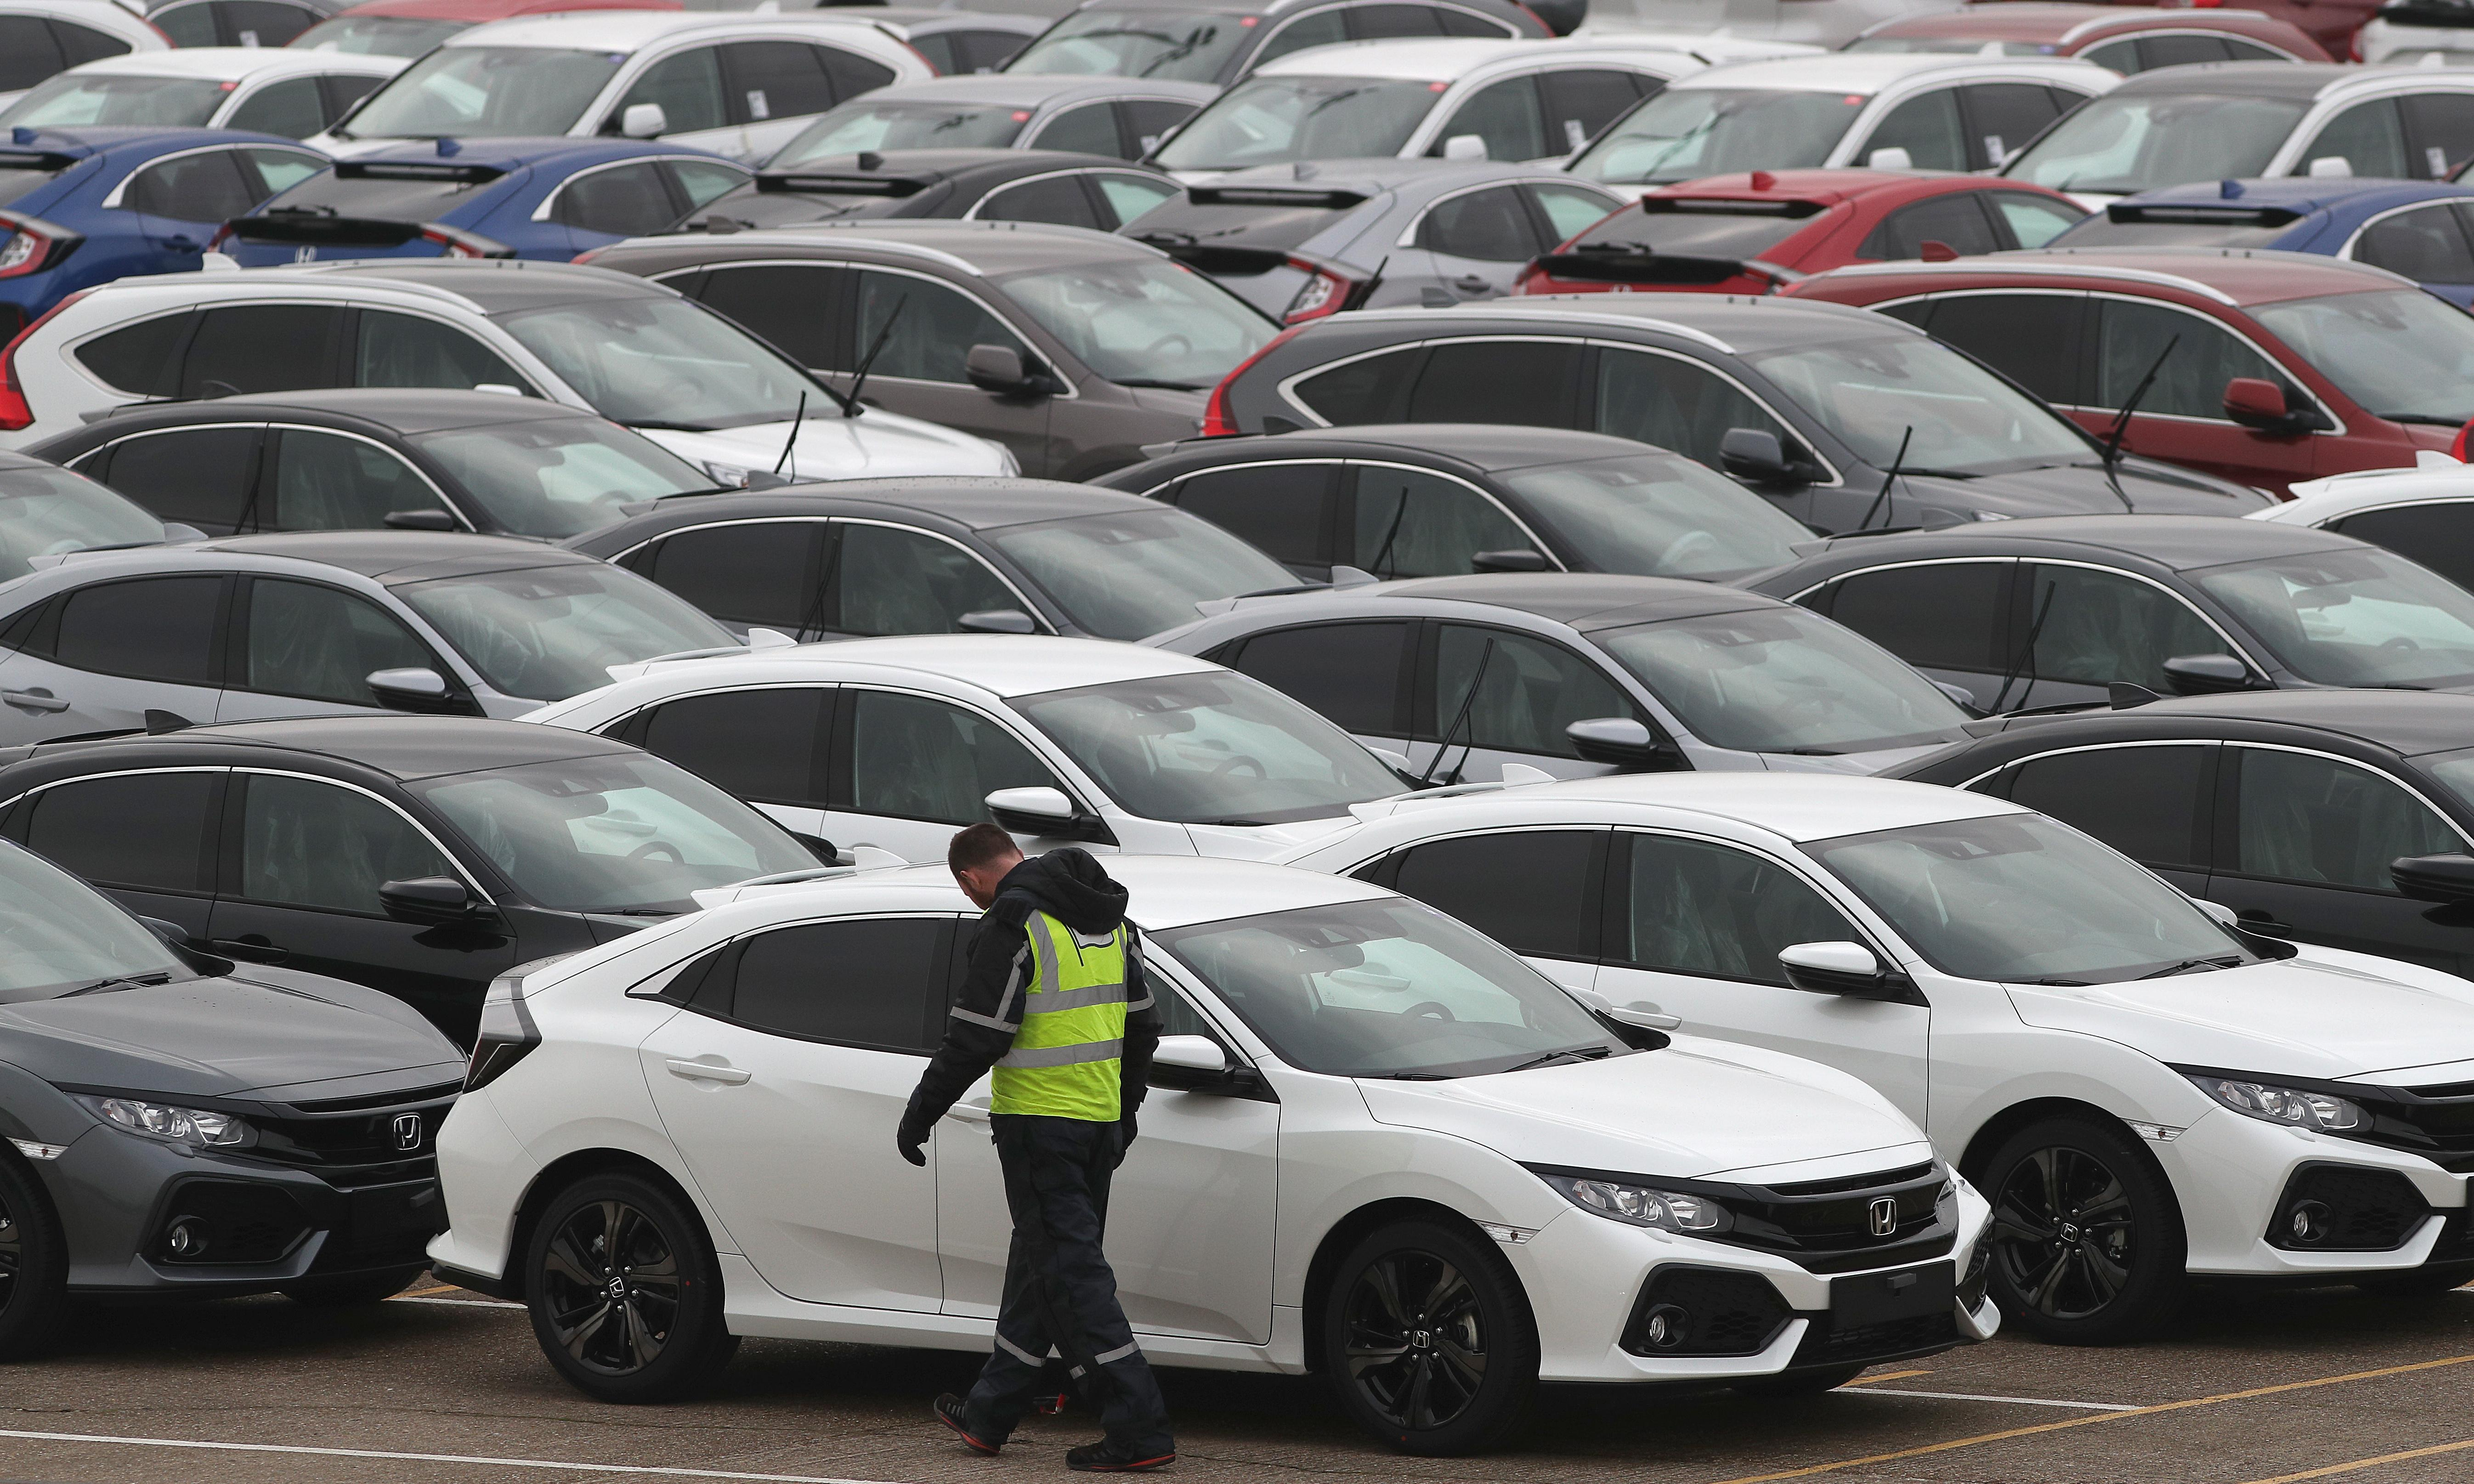 Don't pretend car plant closures have nothing to do with Brexit